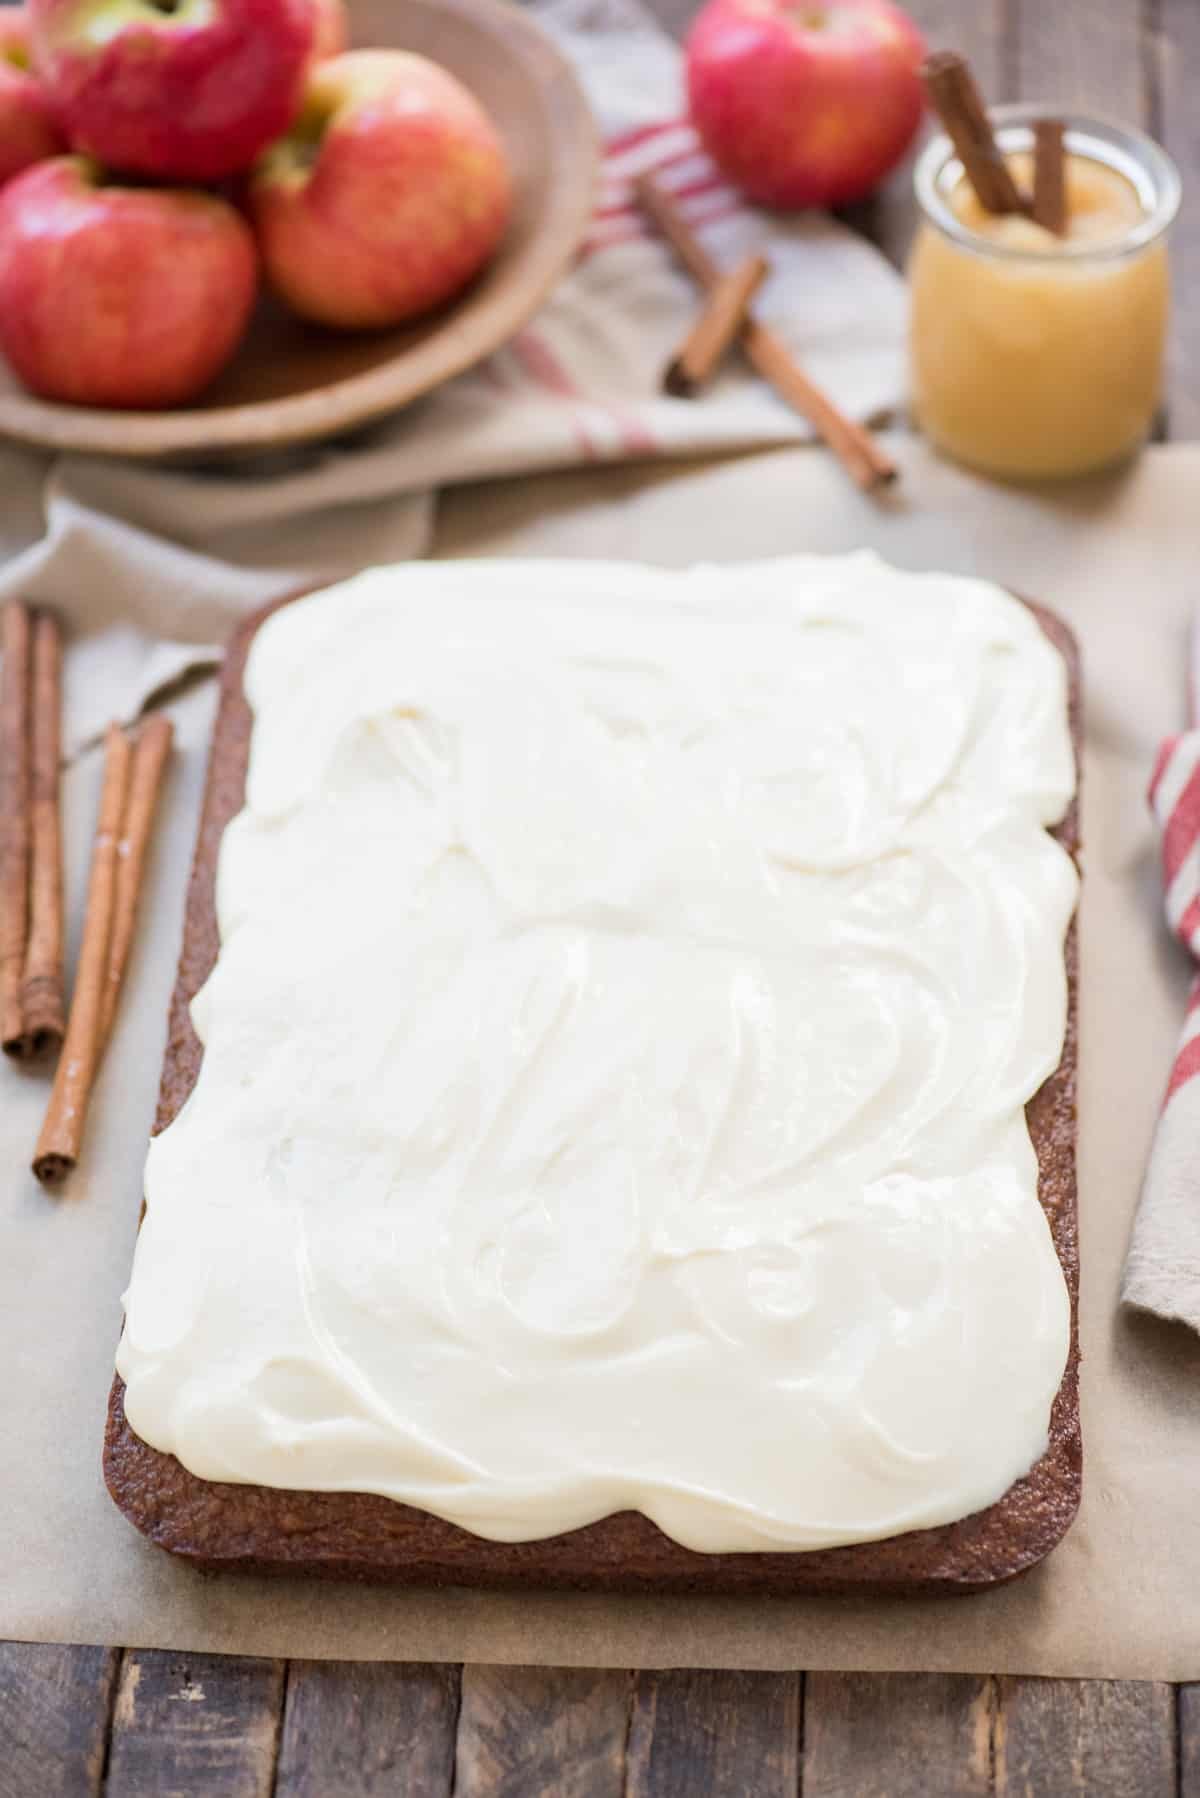 whole applesauce cake topped with cream cheese frosting